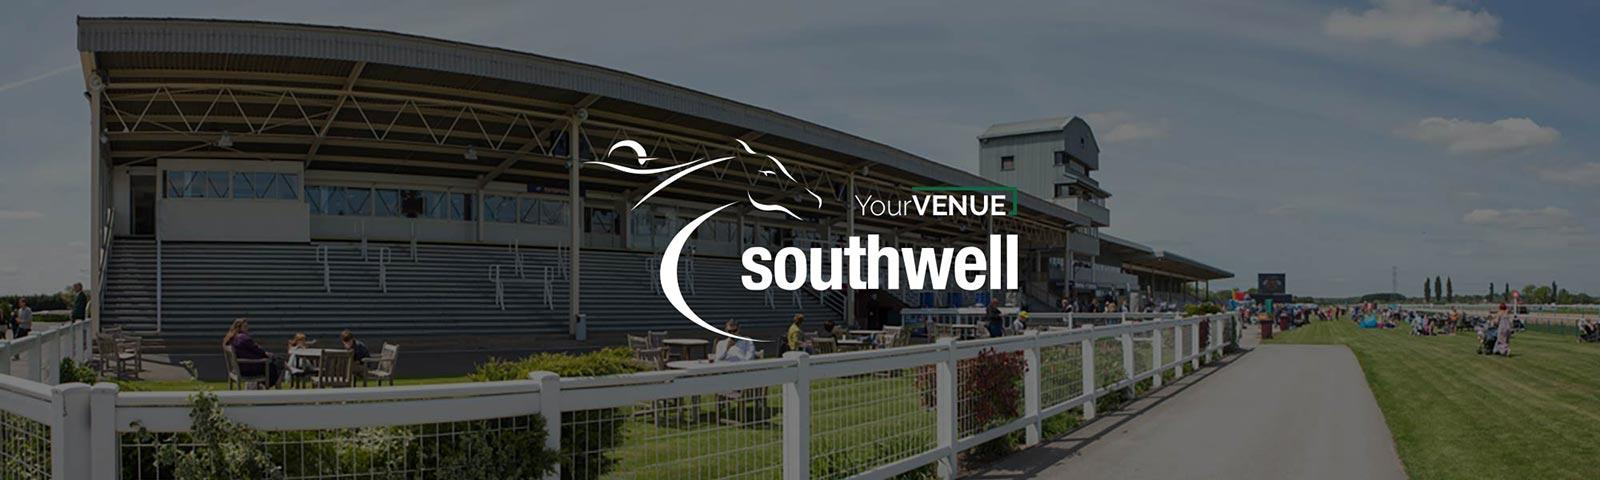 Image showing the YourVENUE and Southwell Racecourse logos over a picture of the course grandstand on a lovely summers day.